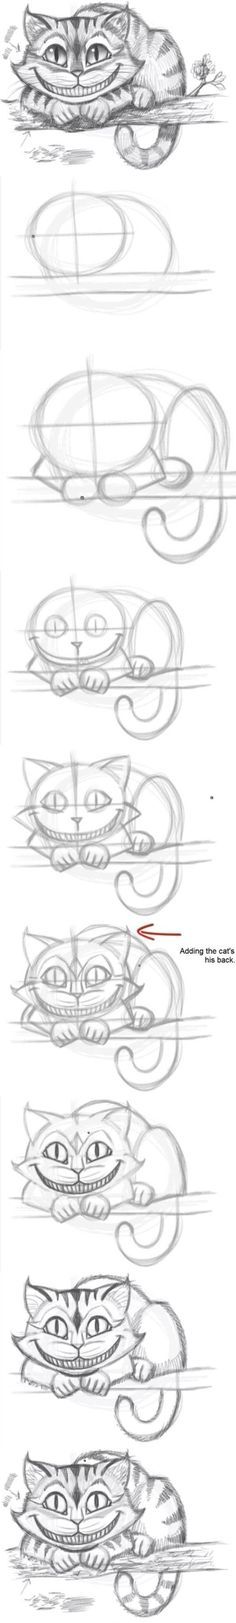 Today's Drawing Class 101: Cartoons and animations || DIY Easily Draw the Cheshire Cat Tutorial